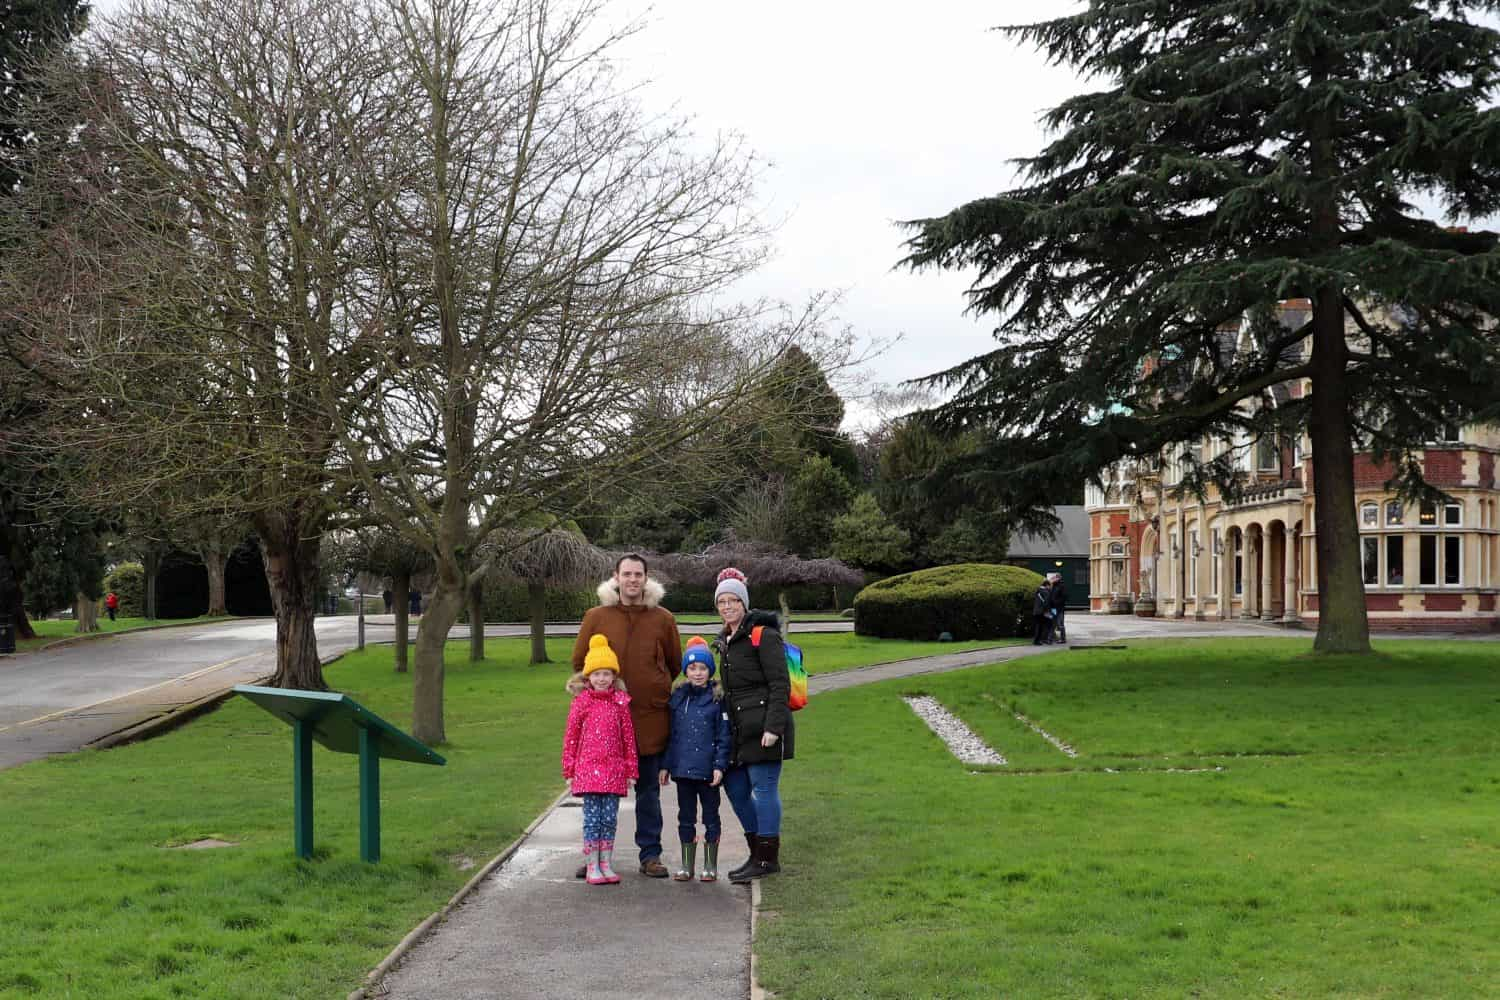 A Family Day Out at Bletchley Park